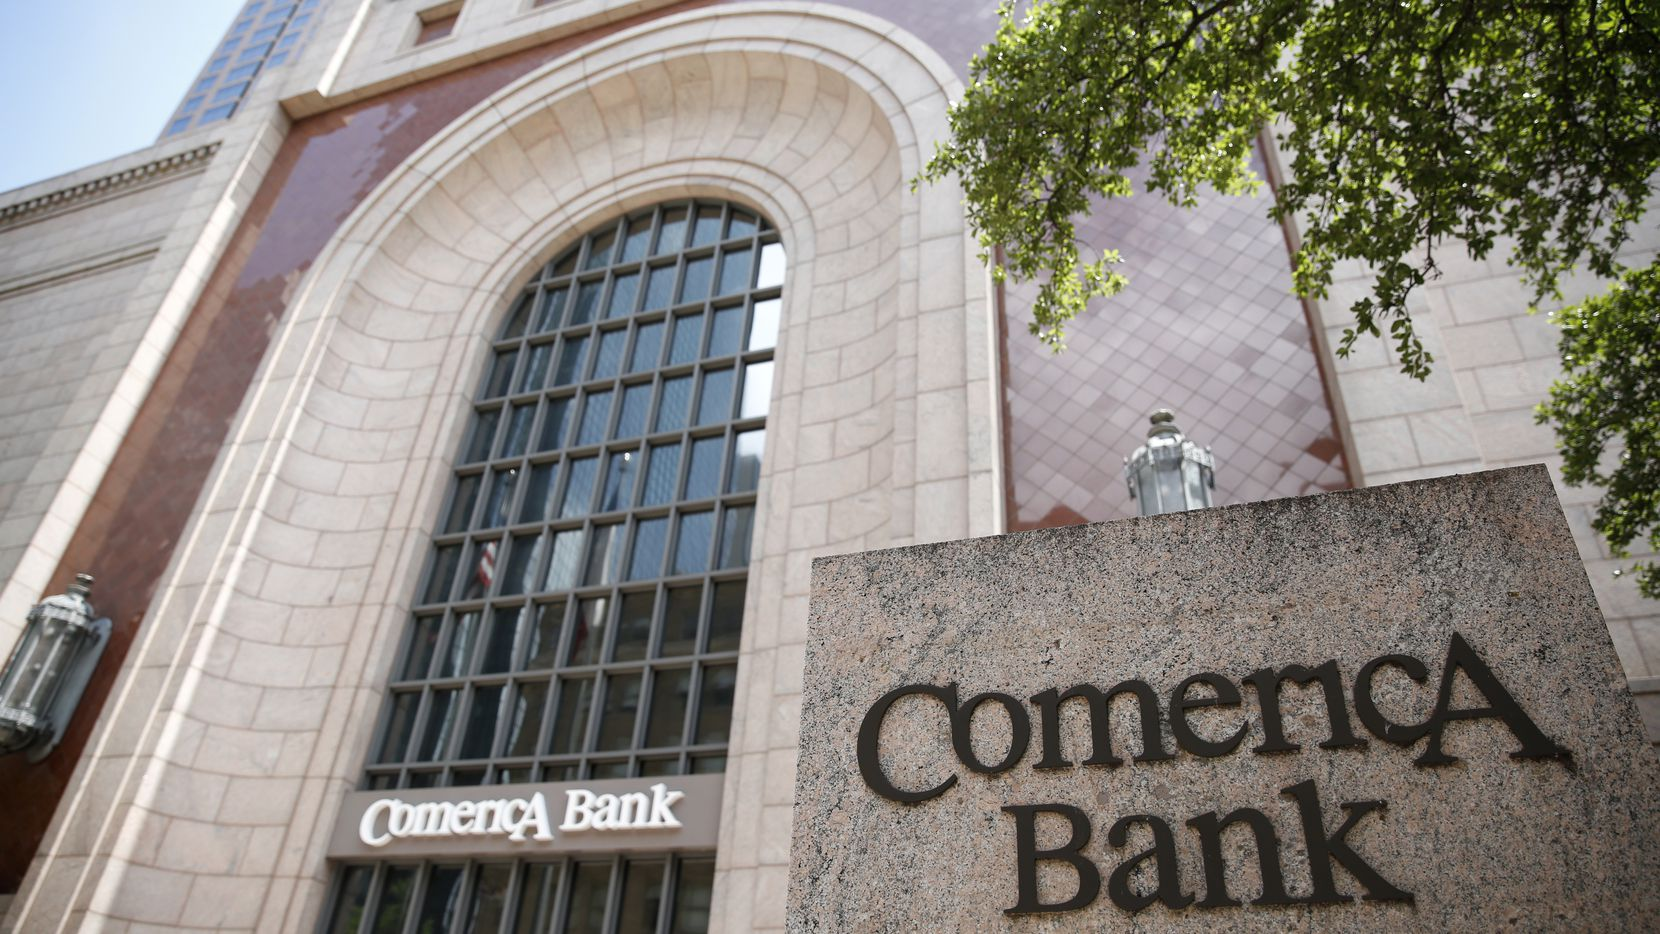 Comerica Bank Tower in downtown Dallas is pictured. The bank has partnered with the Dallas Black Chamber of Commerce in a four-week camp to help people start or maintain their own business.